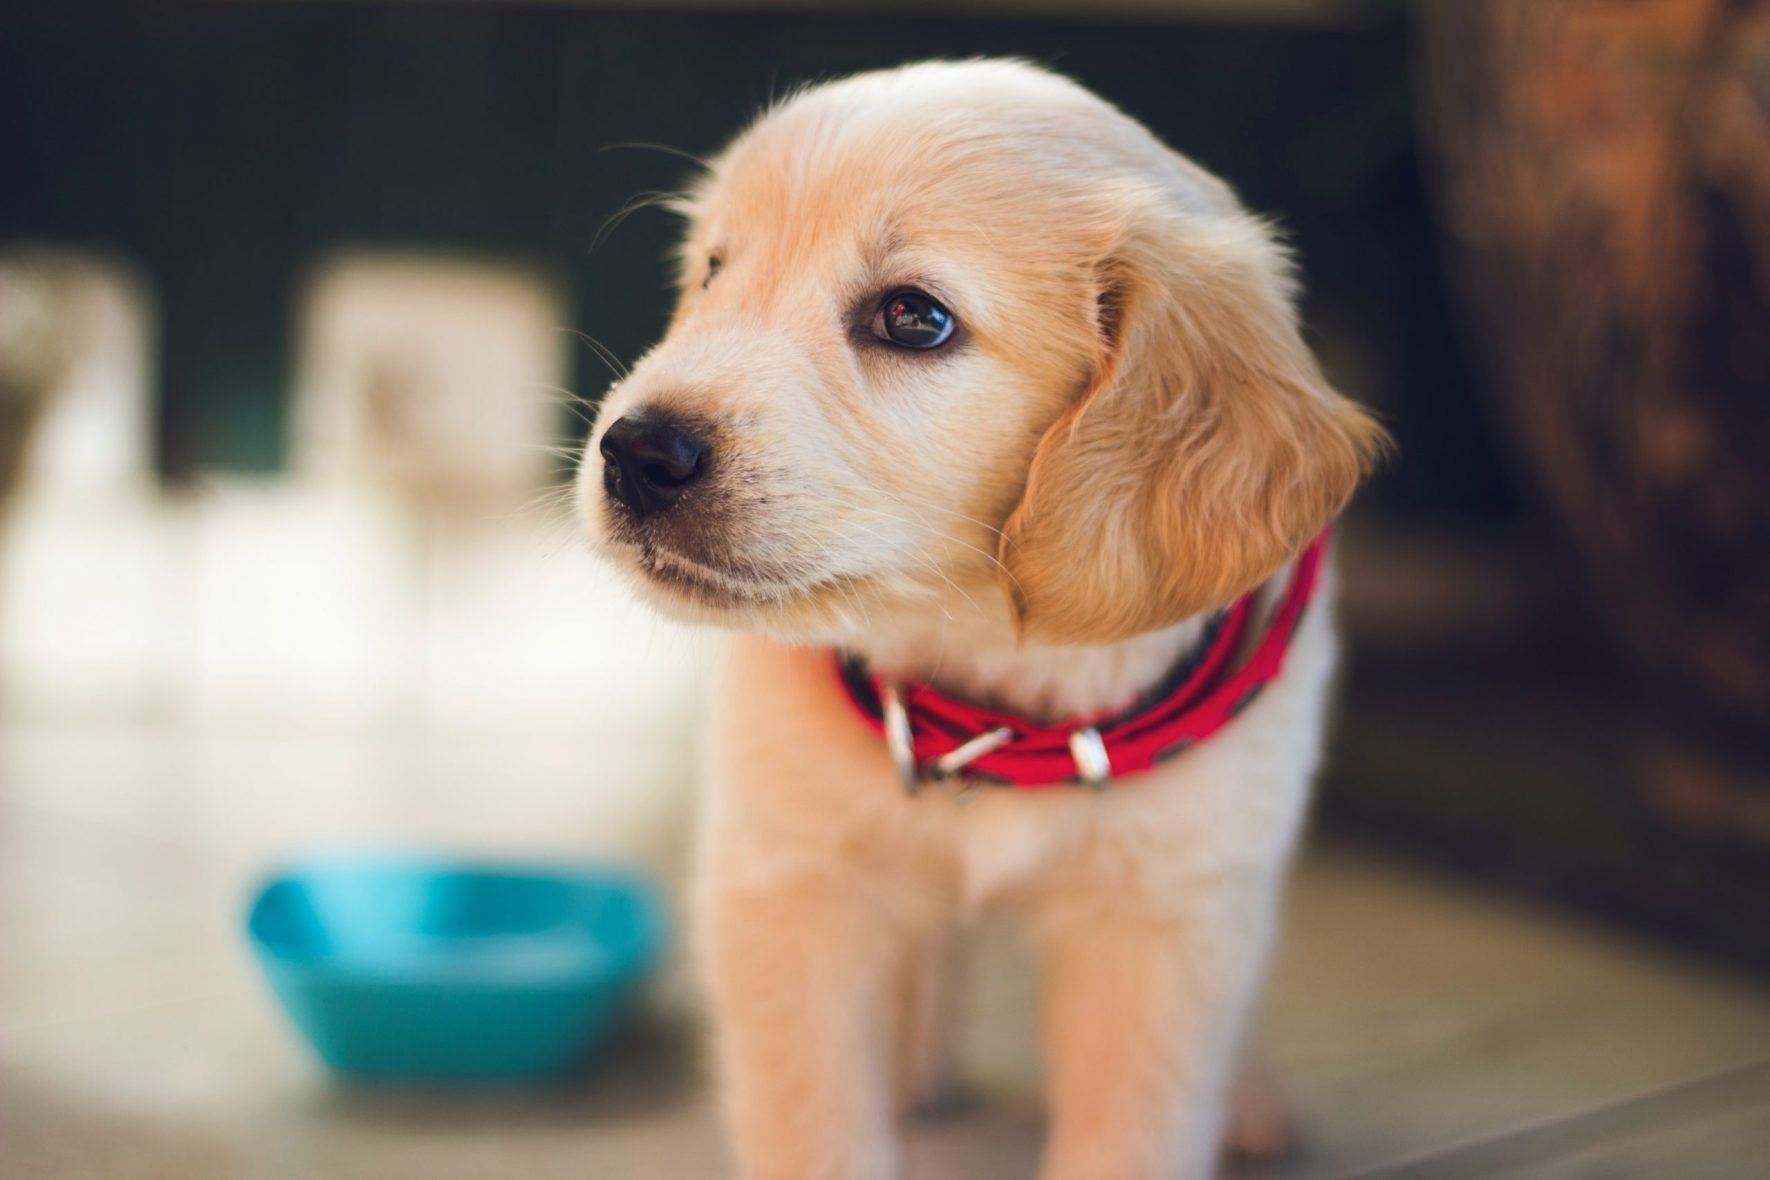 5 Important Things to Consider Before Getting a Dog 2